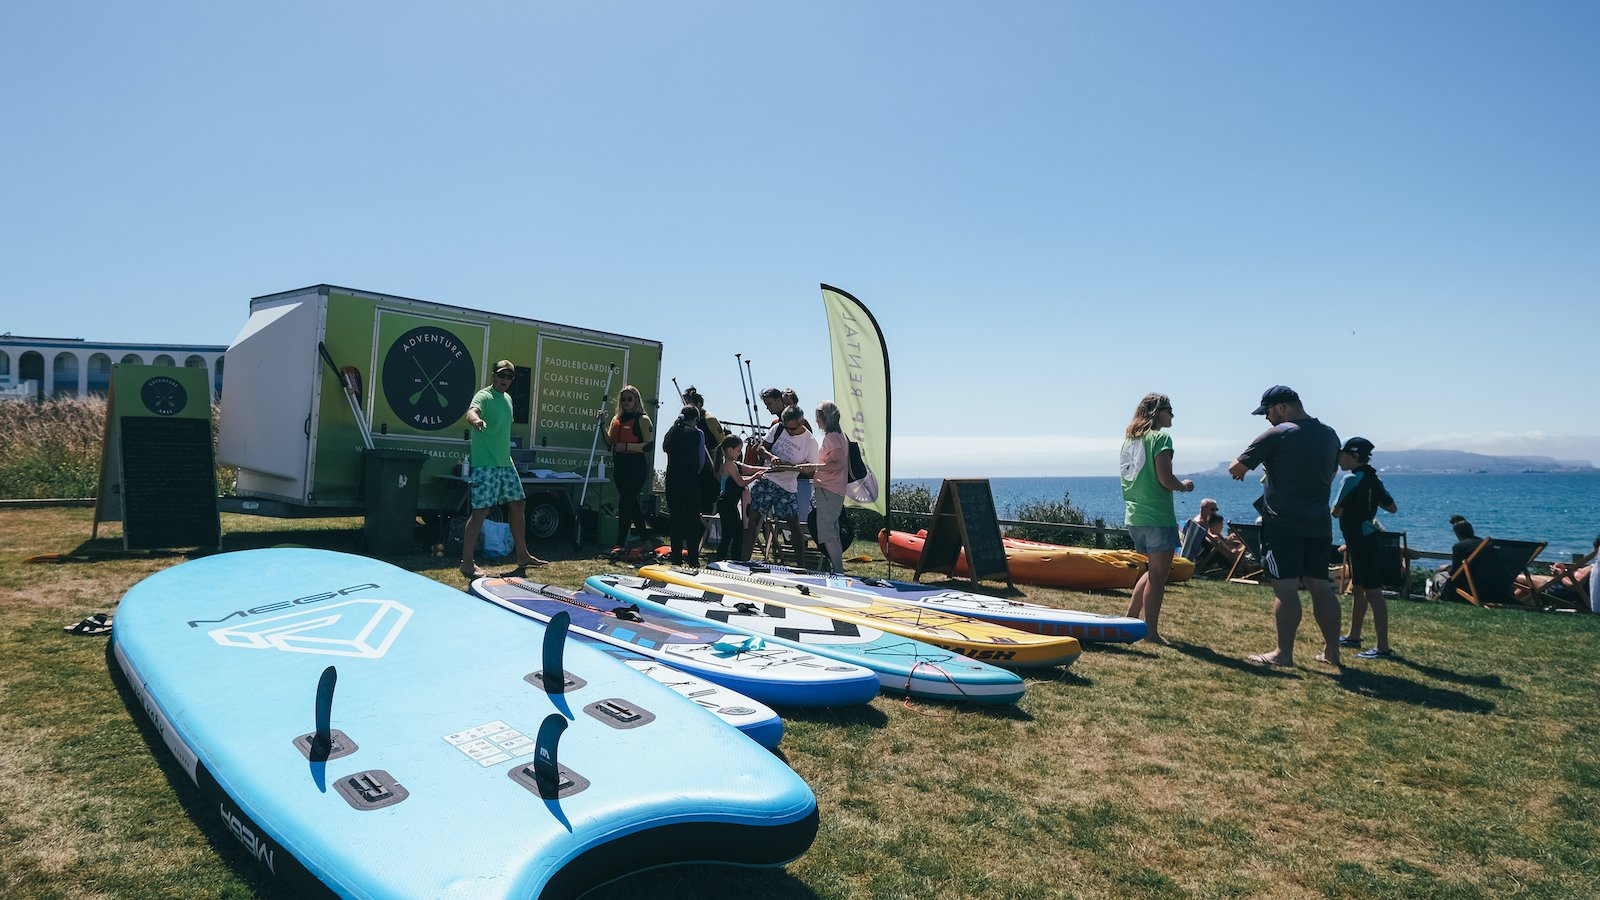 XXL Paddleboard SUP Rental and Hire in Weymouth and Portland, Dorset